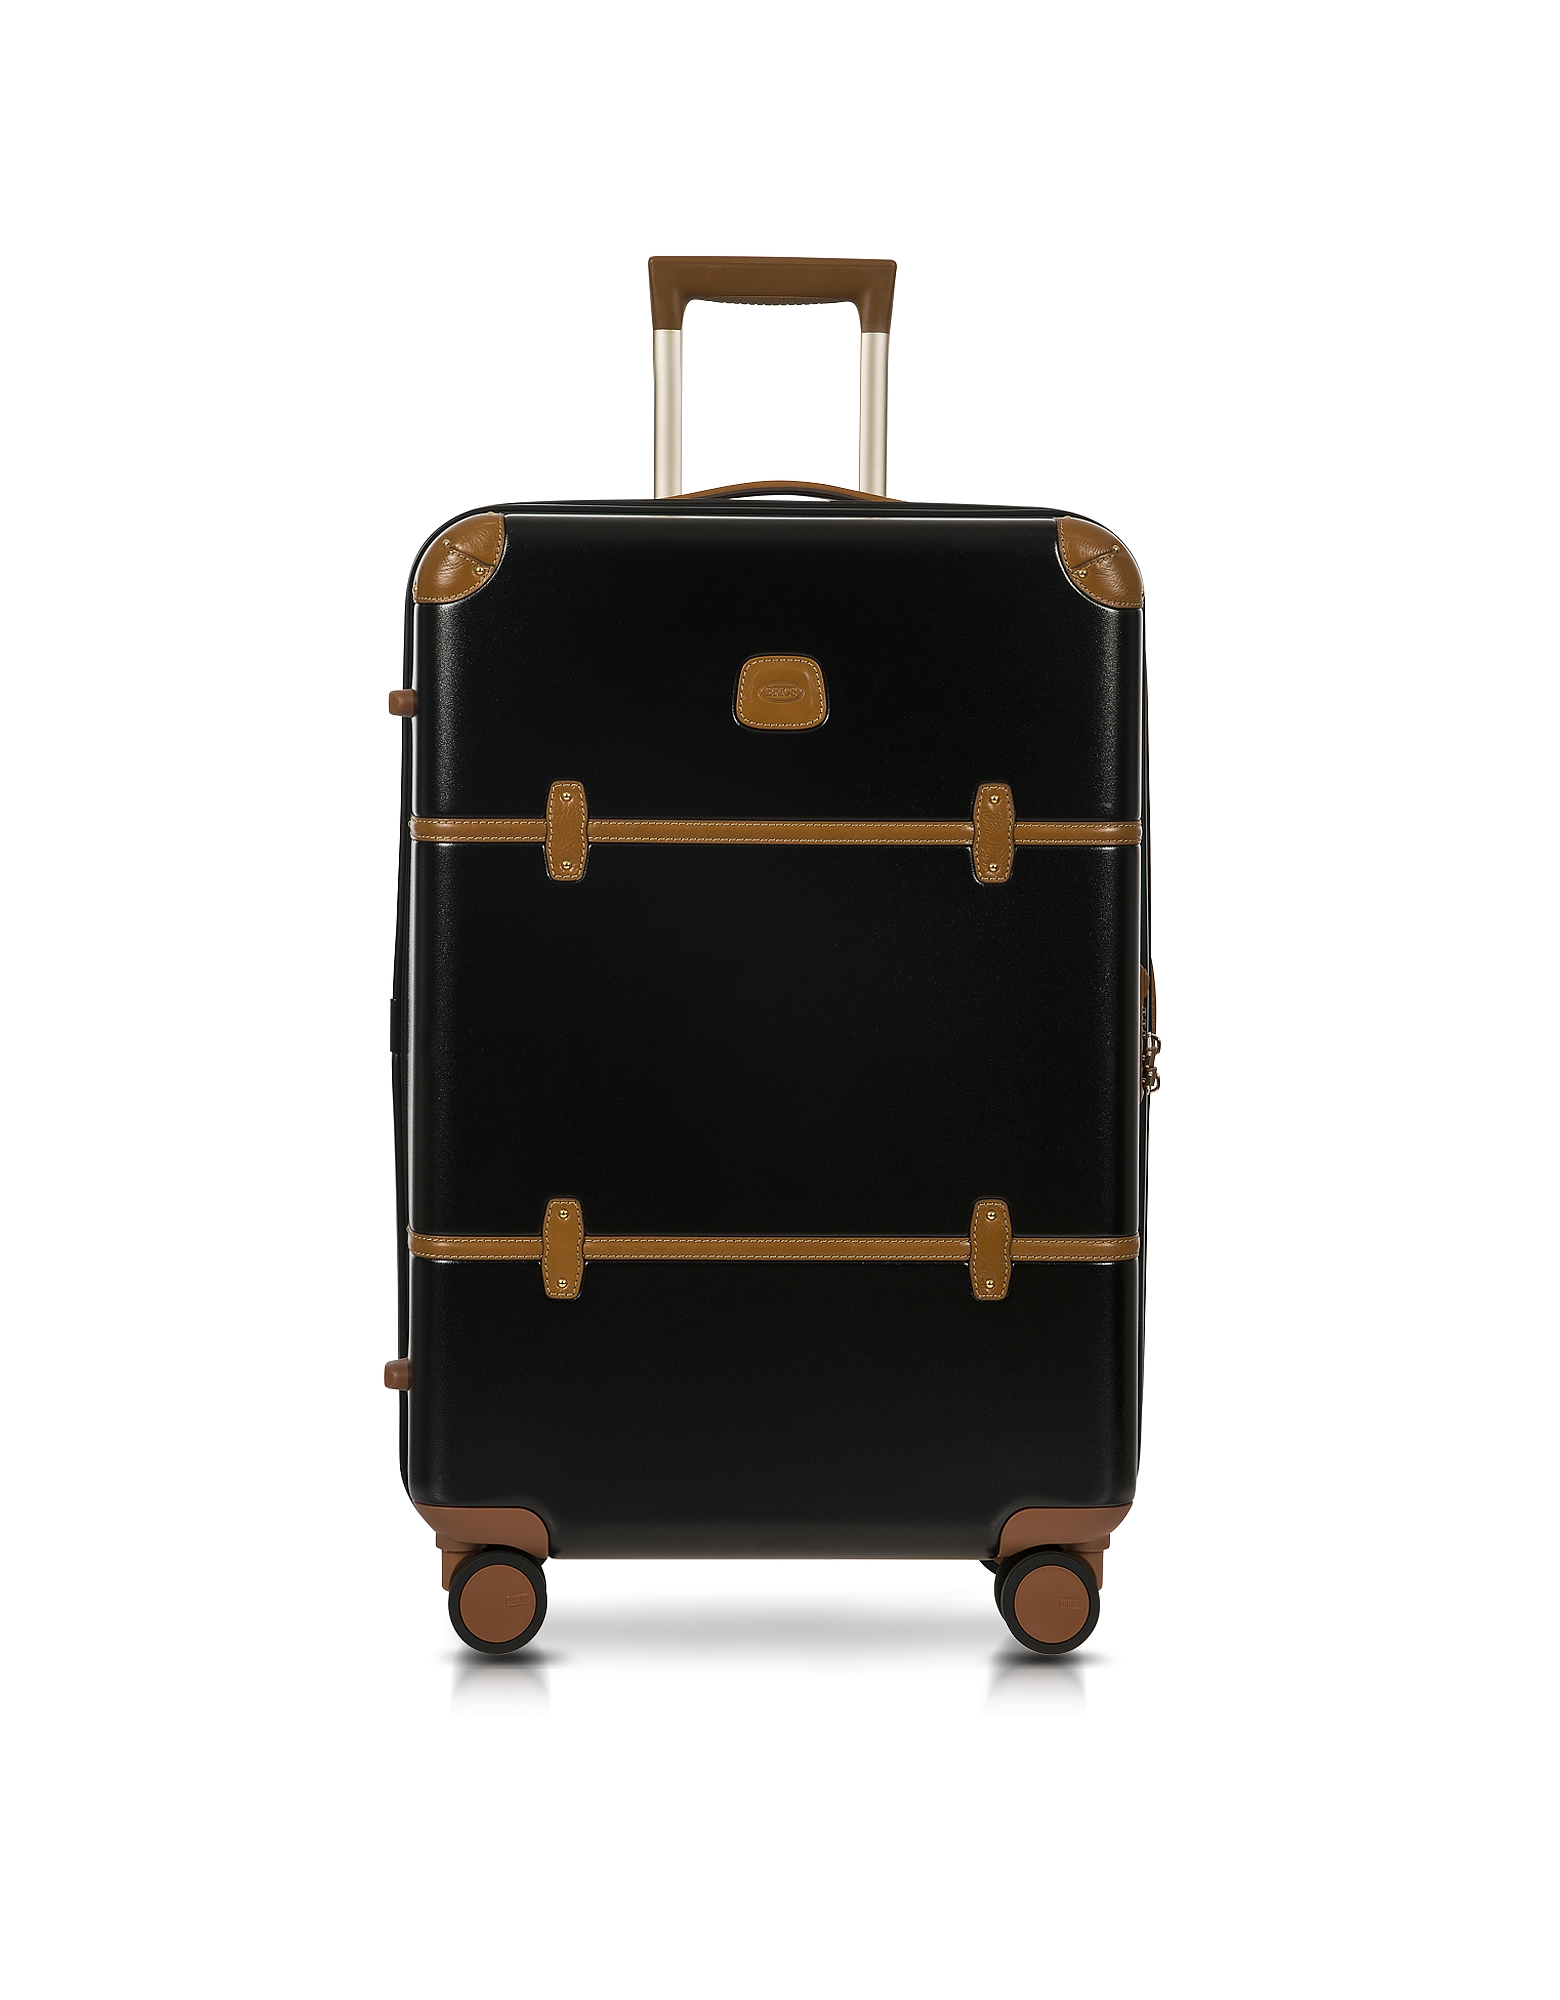 Bric's Travel Bags, Bellagio V2.0 27 Black-Tobacco Spinner Trunk